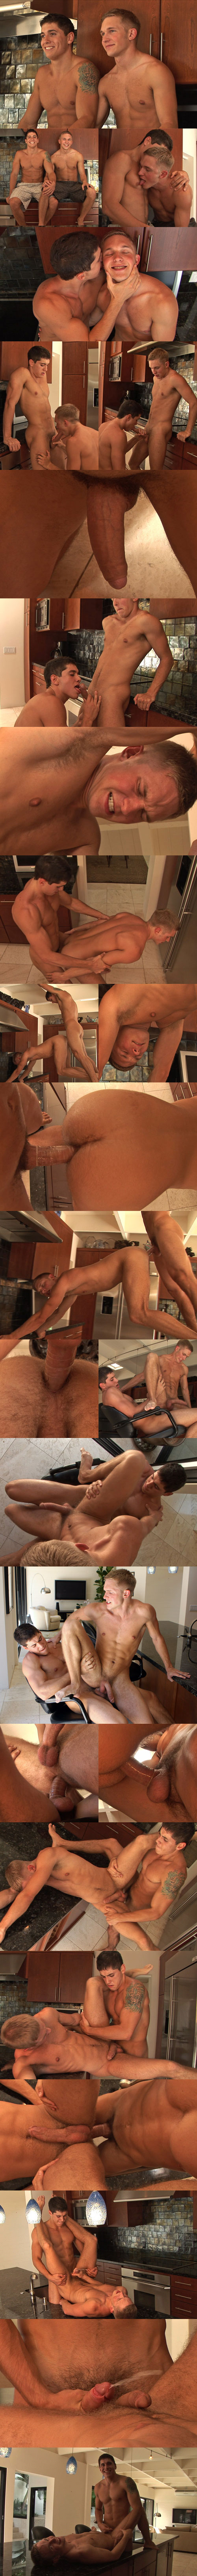 SeanCody: Jake bangs Pete